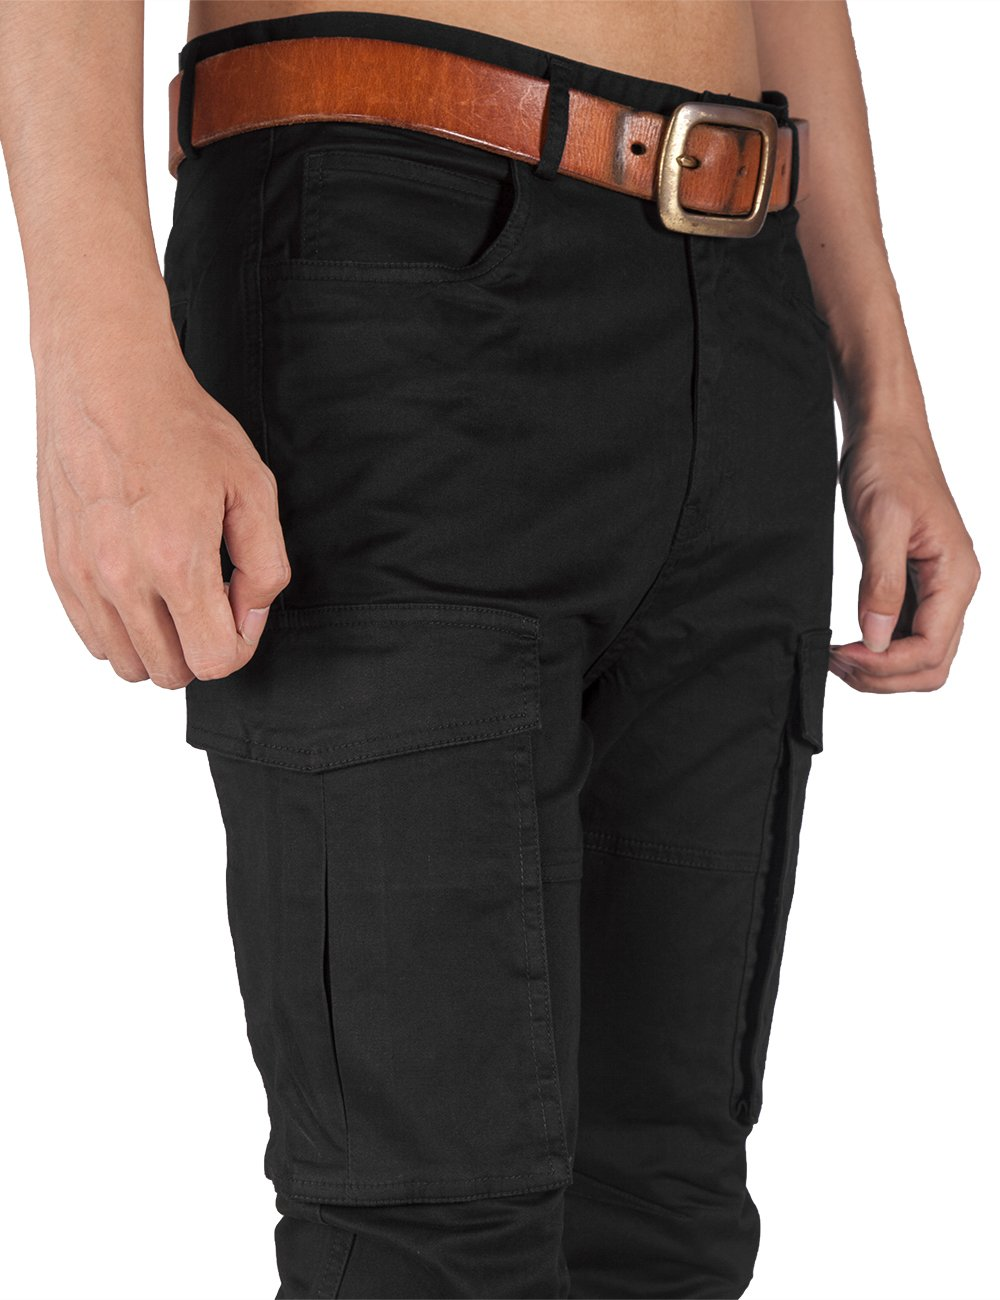 ITALY MORN Men Chino Cargo Jogger Pants Casual Twill Khakis Slim fit Black (S, Black) by ITALY MORN (Image #7)